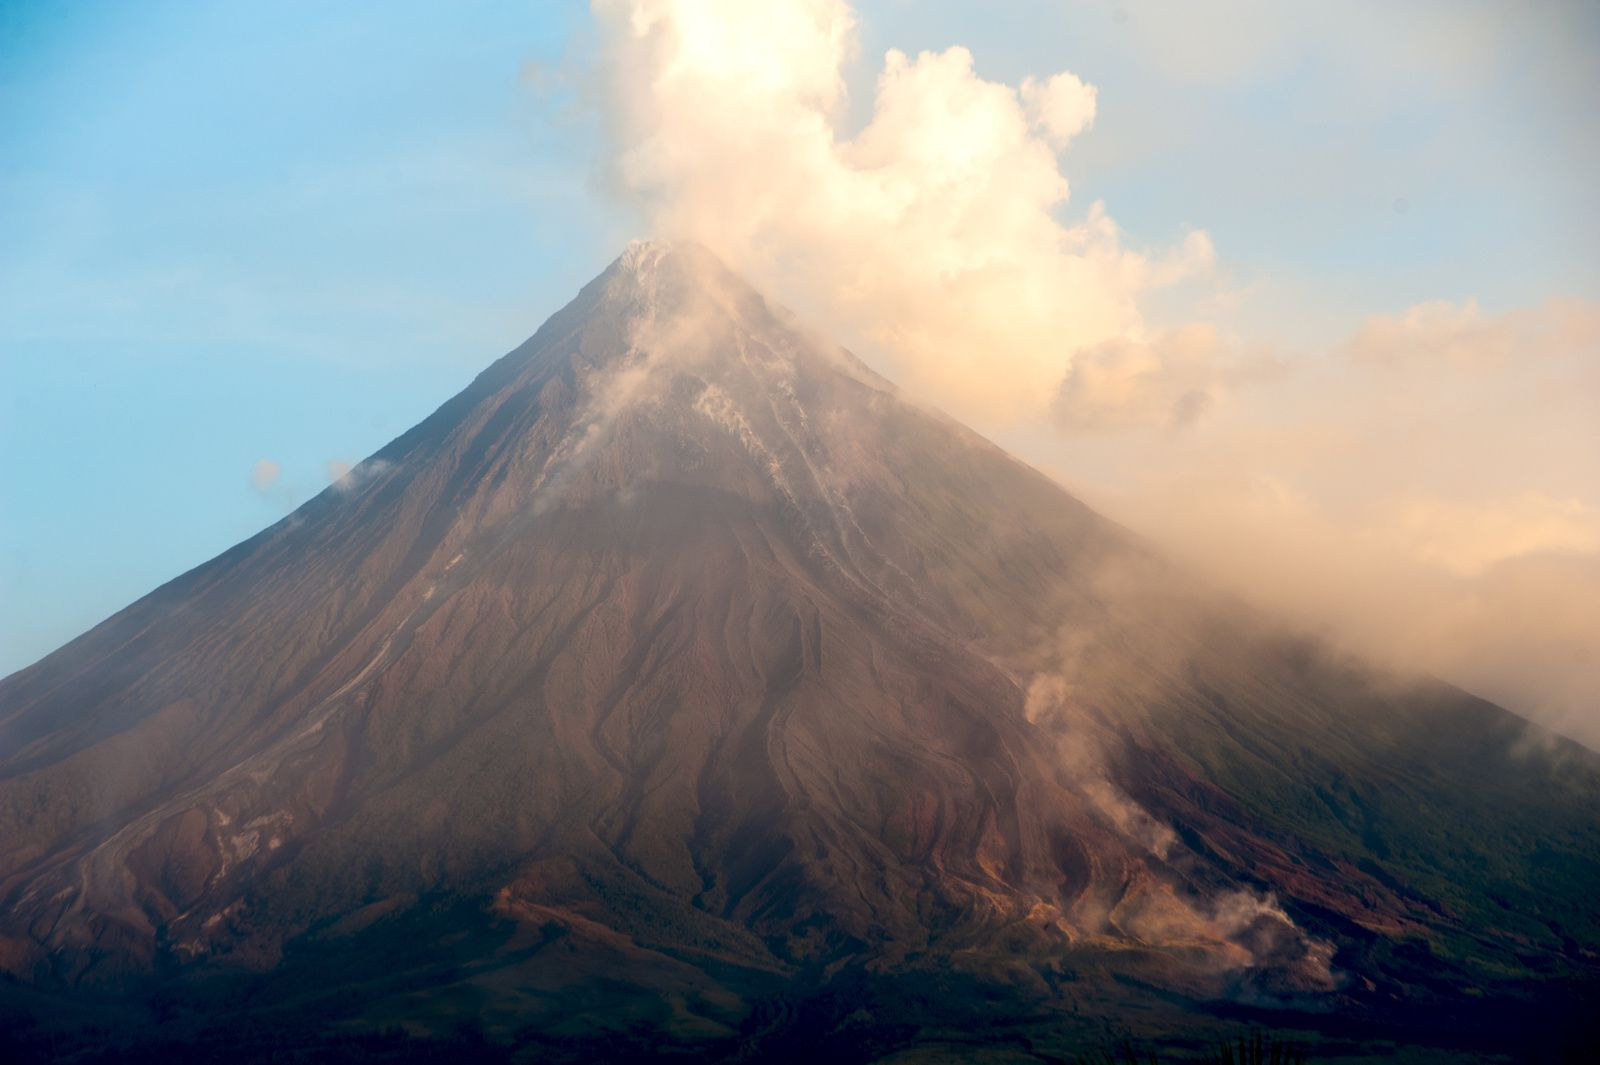 Mayon - archive image 02.2018 / © Thierry Sluys.